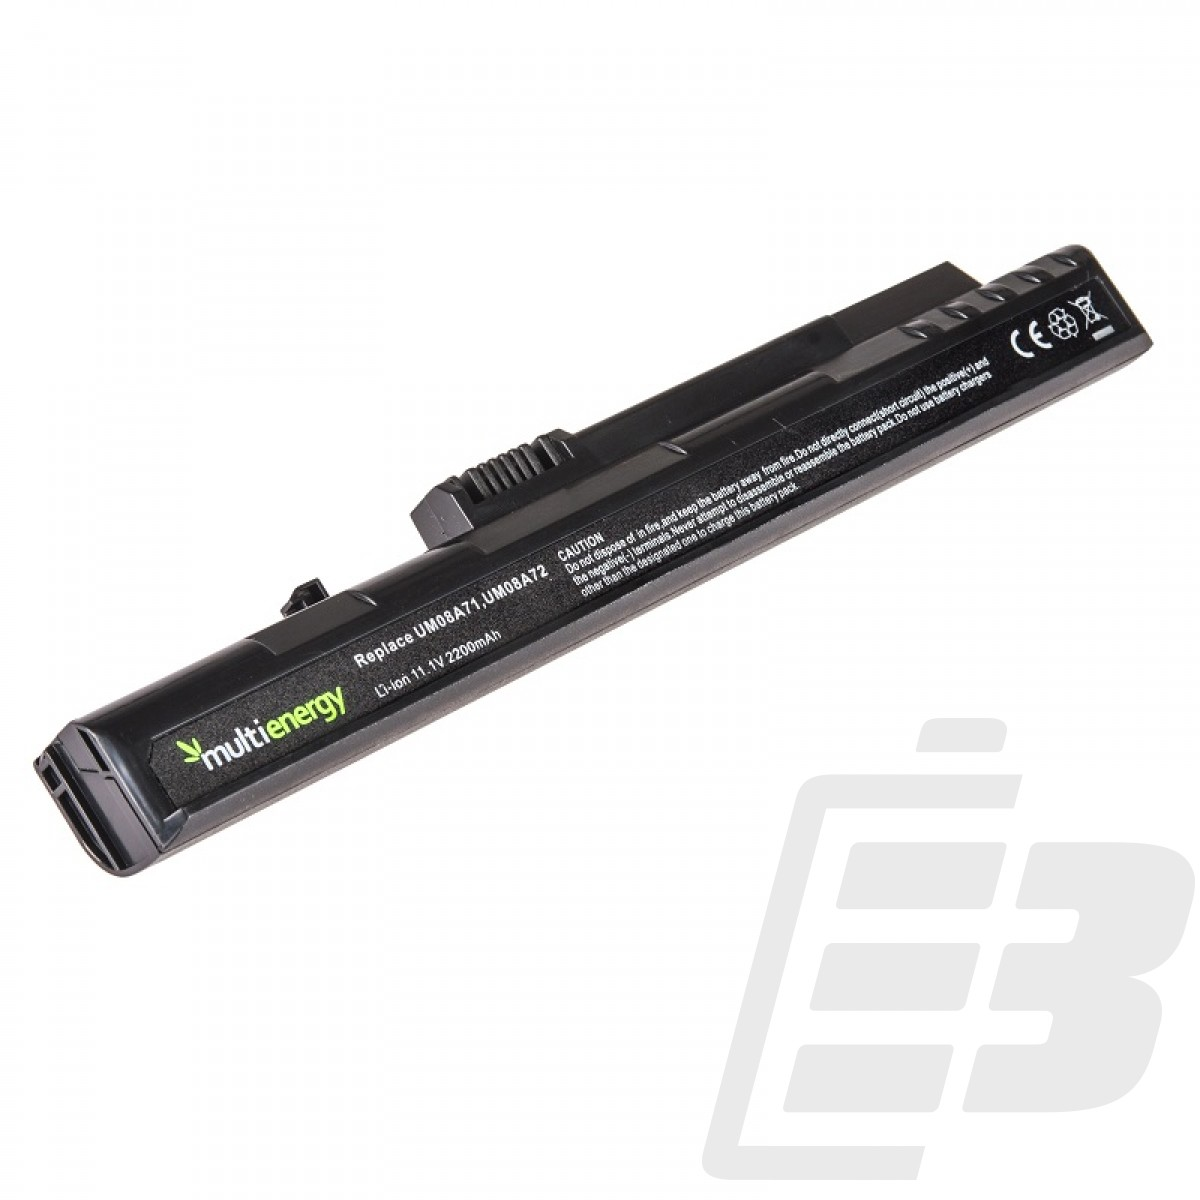 Netbook battery Acer Aspire One D250 2200mah black_1